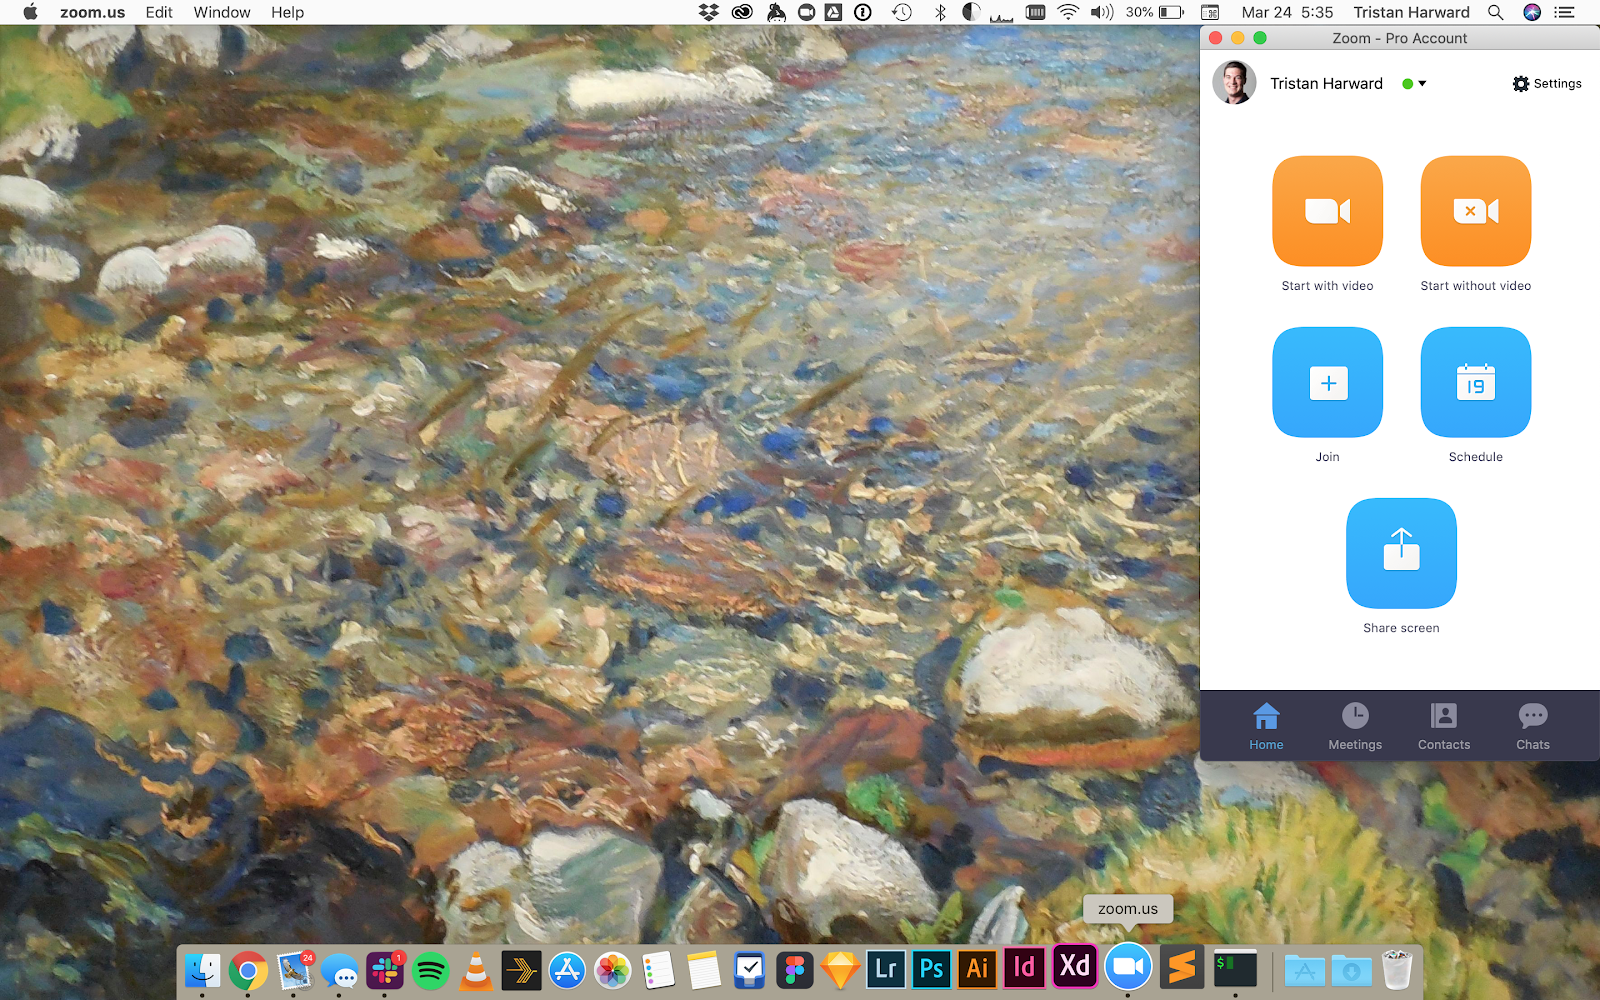 This is a screenshot image of a desktop with the zoom video conferencing desktop app, showing 5 large cta buttons, 2 orange, 3 blue.